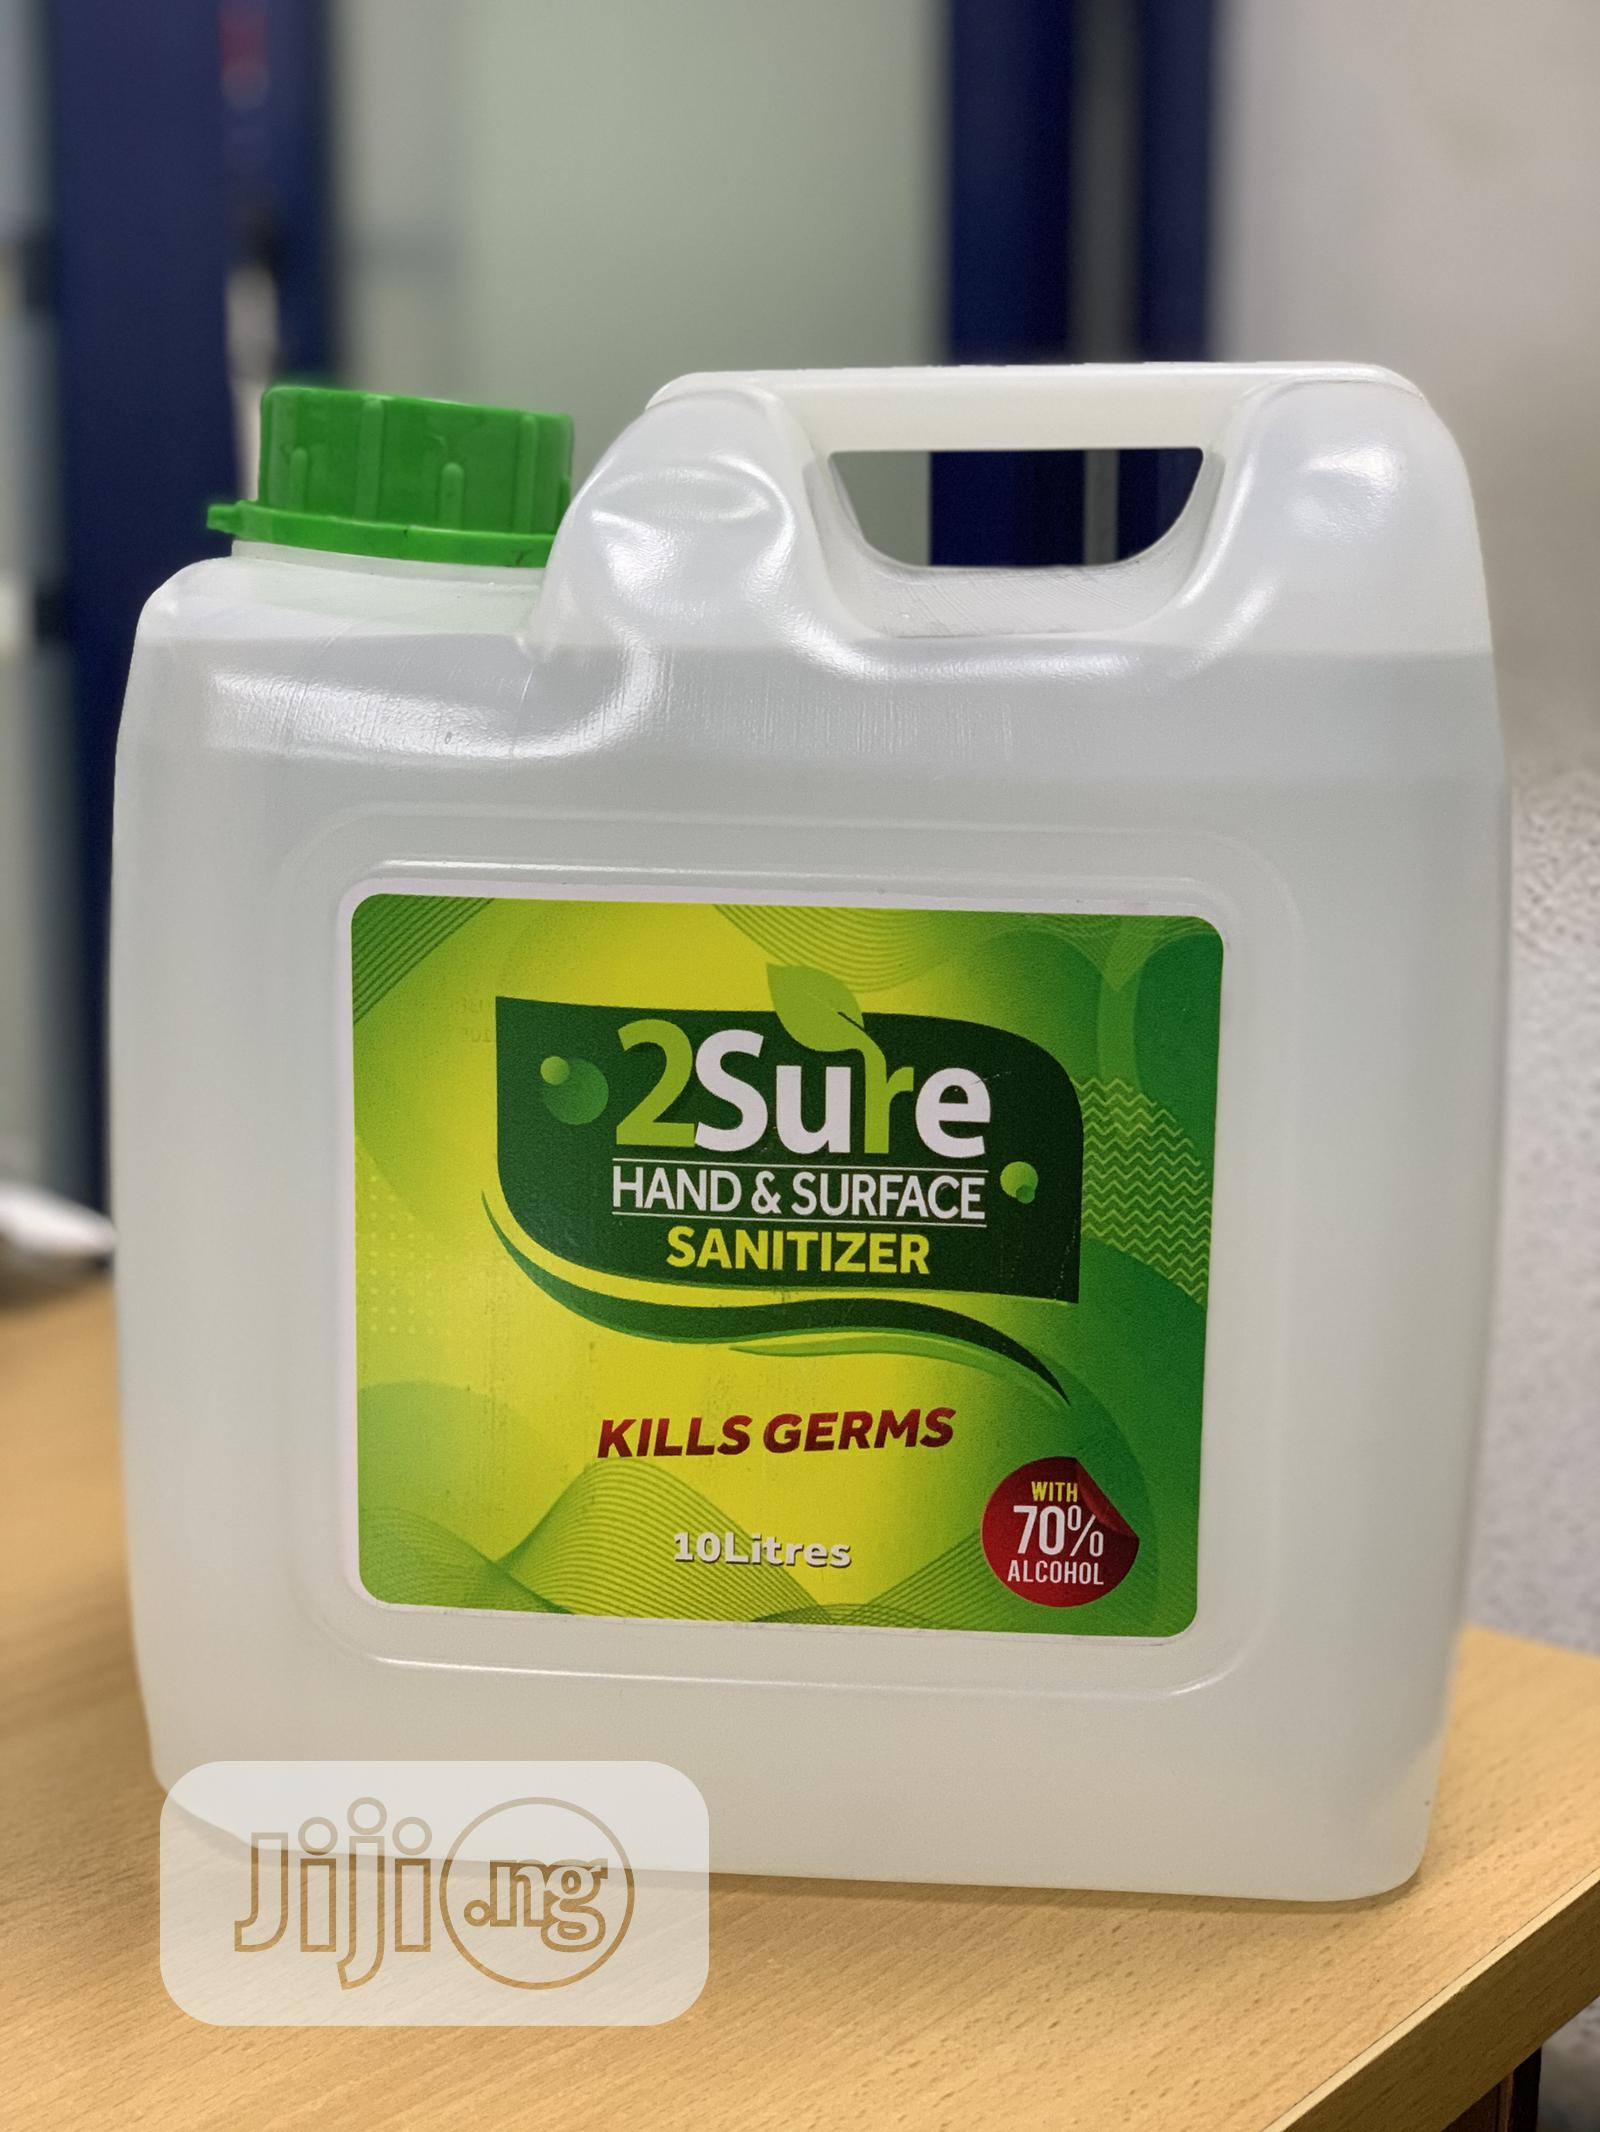 2sure Hand and Surface Sanitizer 10litre